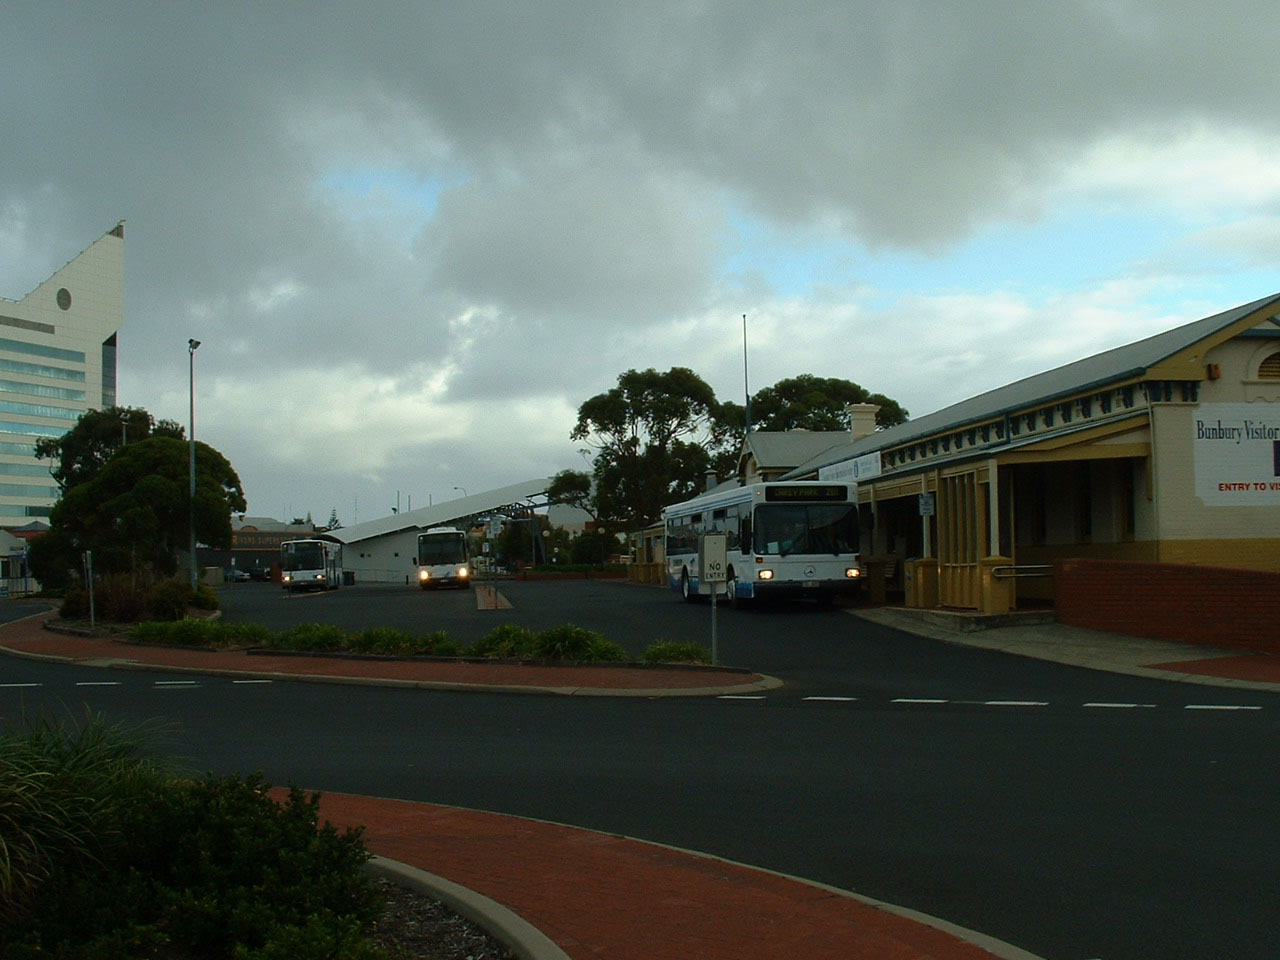 Bunbury Bus Station